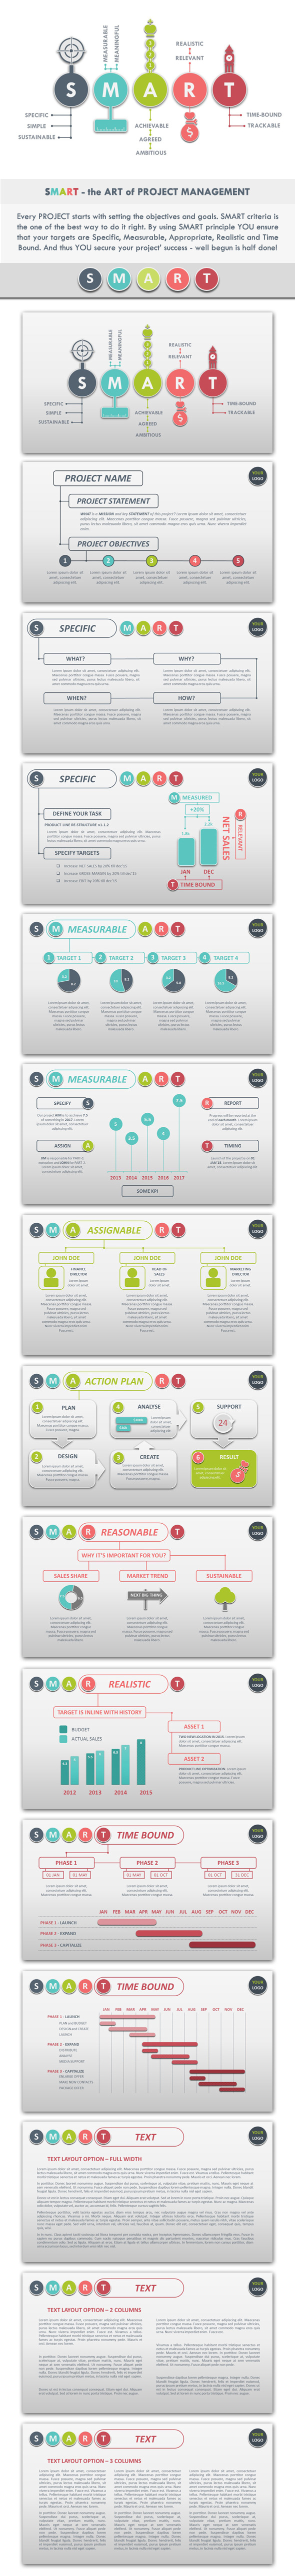 GraphicRiver SMART001 Project Management PowerPoint Template 9548840